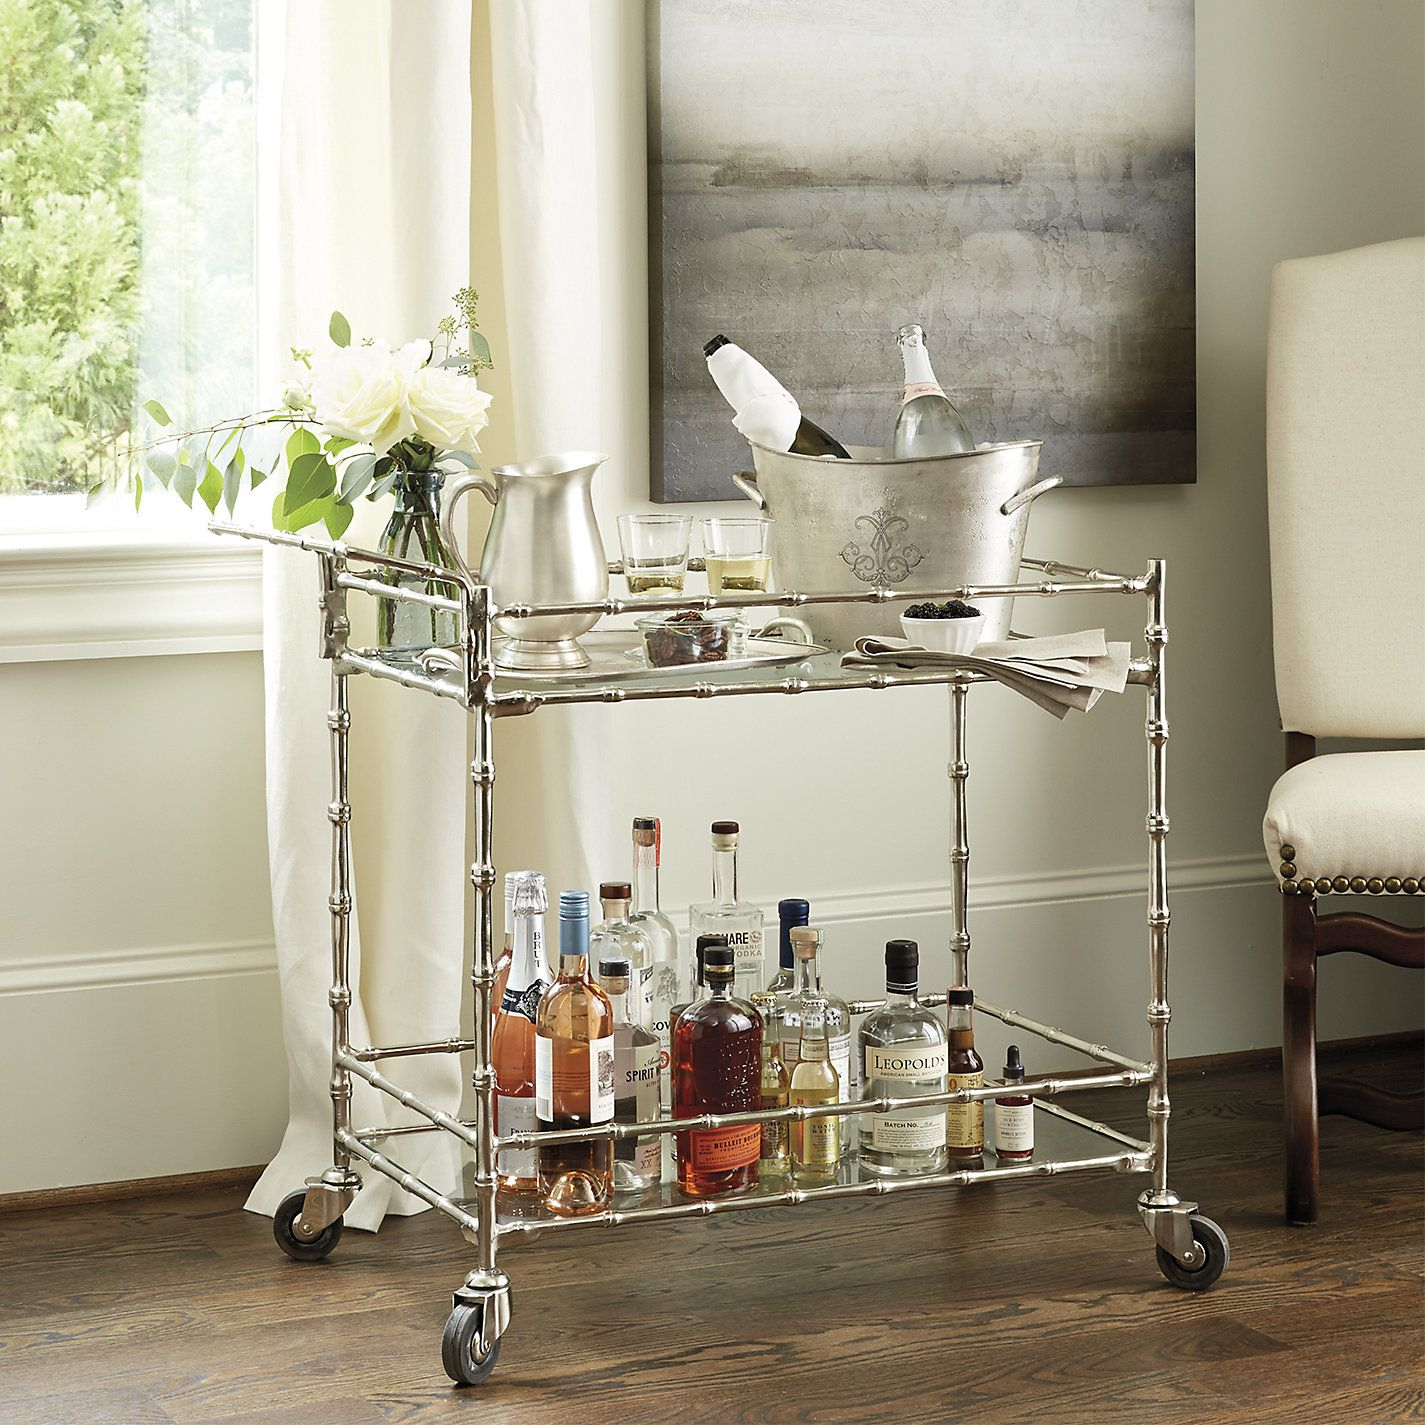 With this bamboo-style bar cart, the drinks can follow the party. Two tempered glass shelves with gallery rails keep barware and bottles corralled and ready for serving.